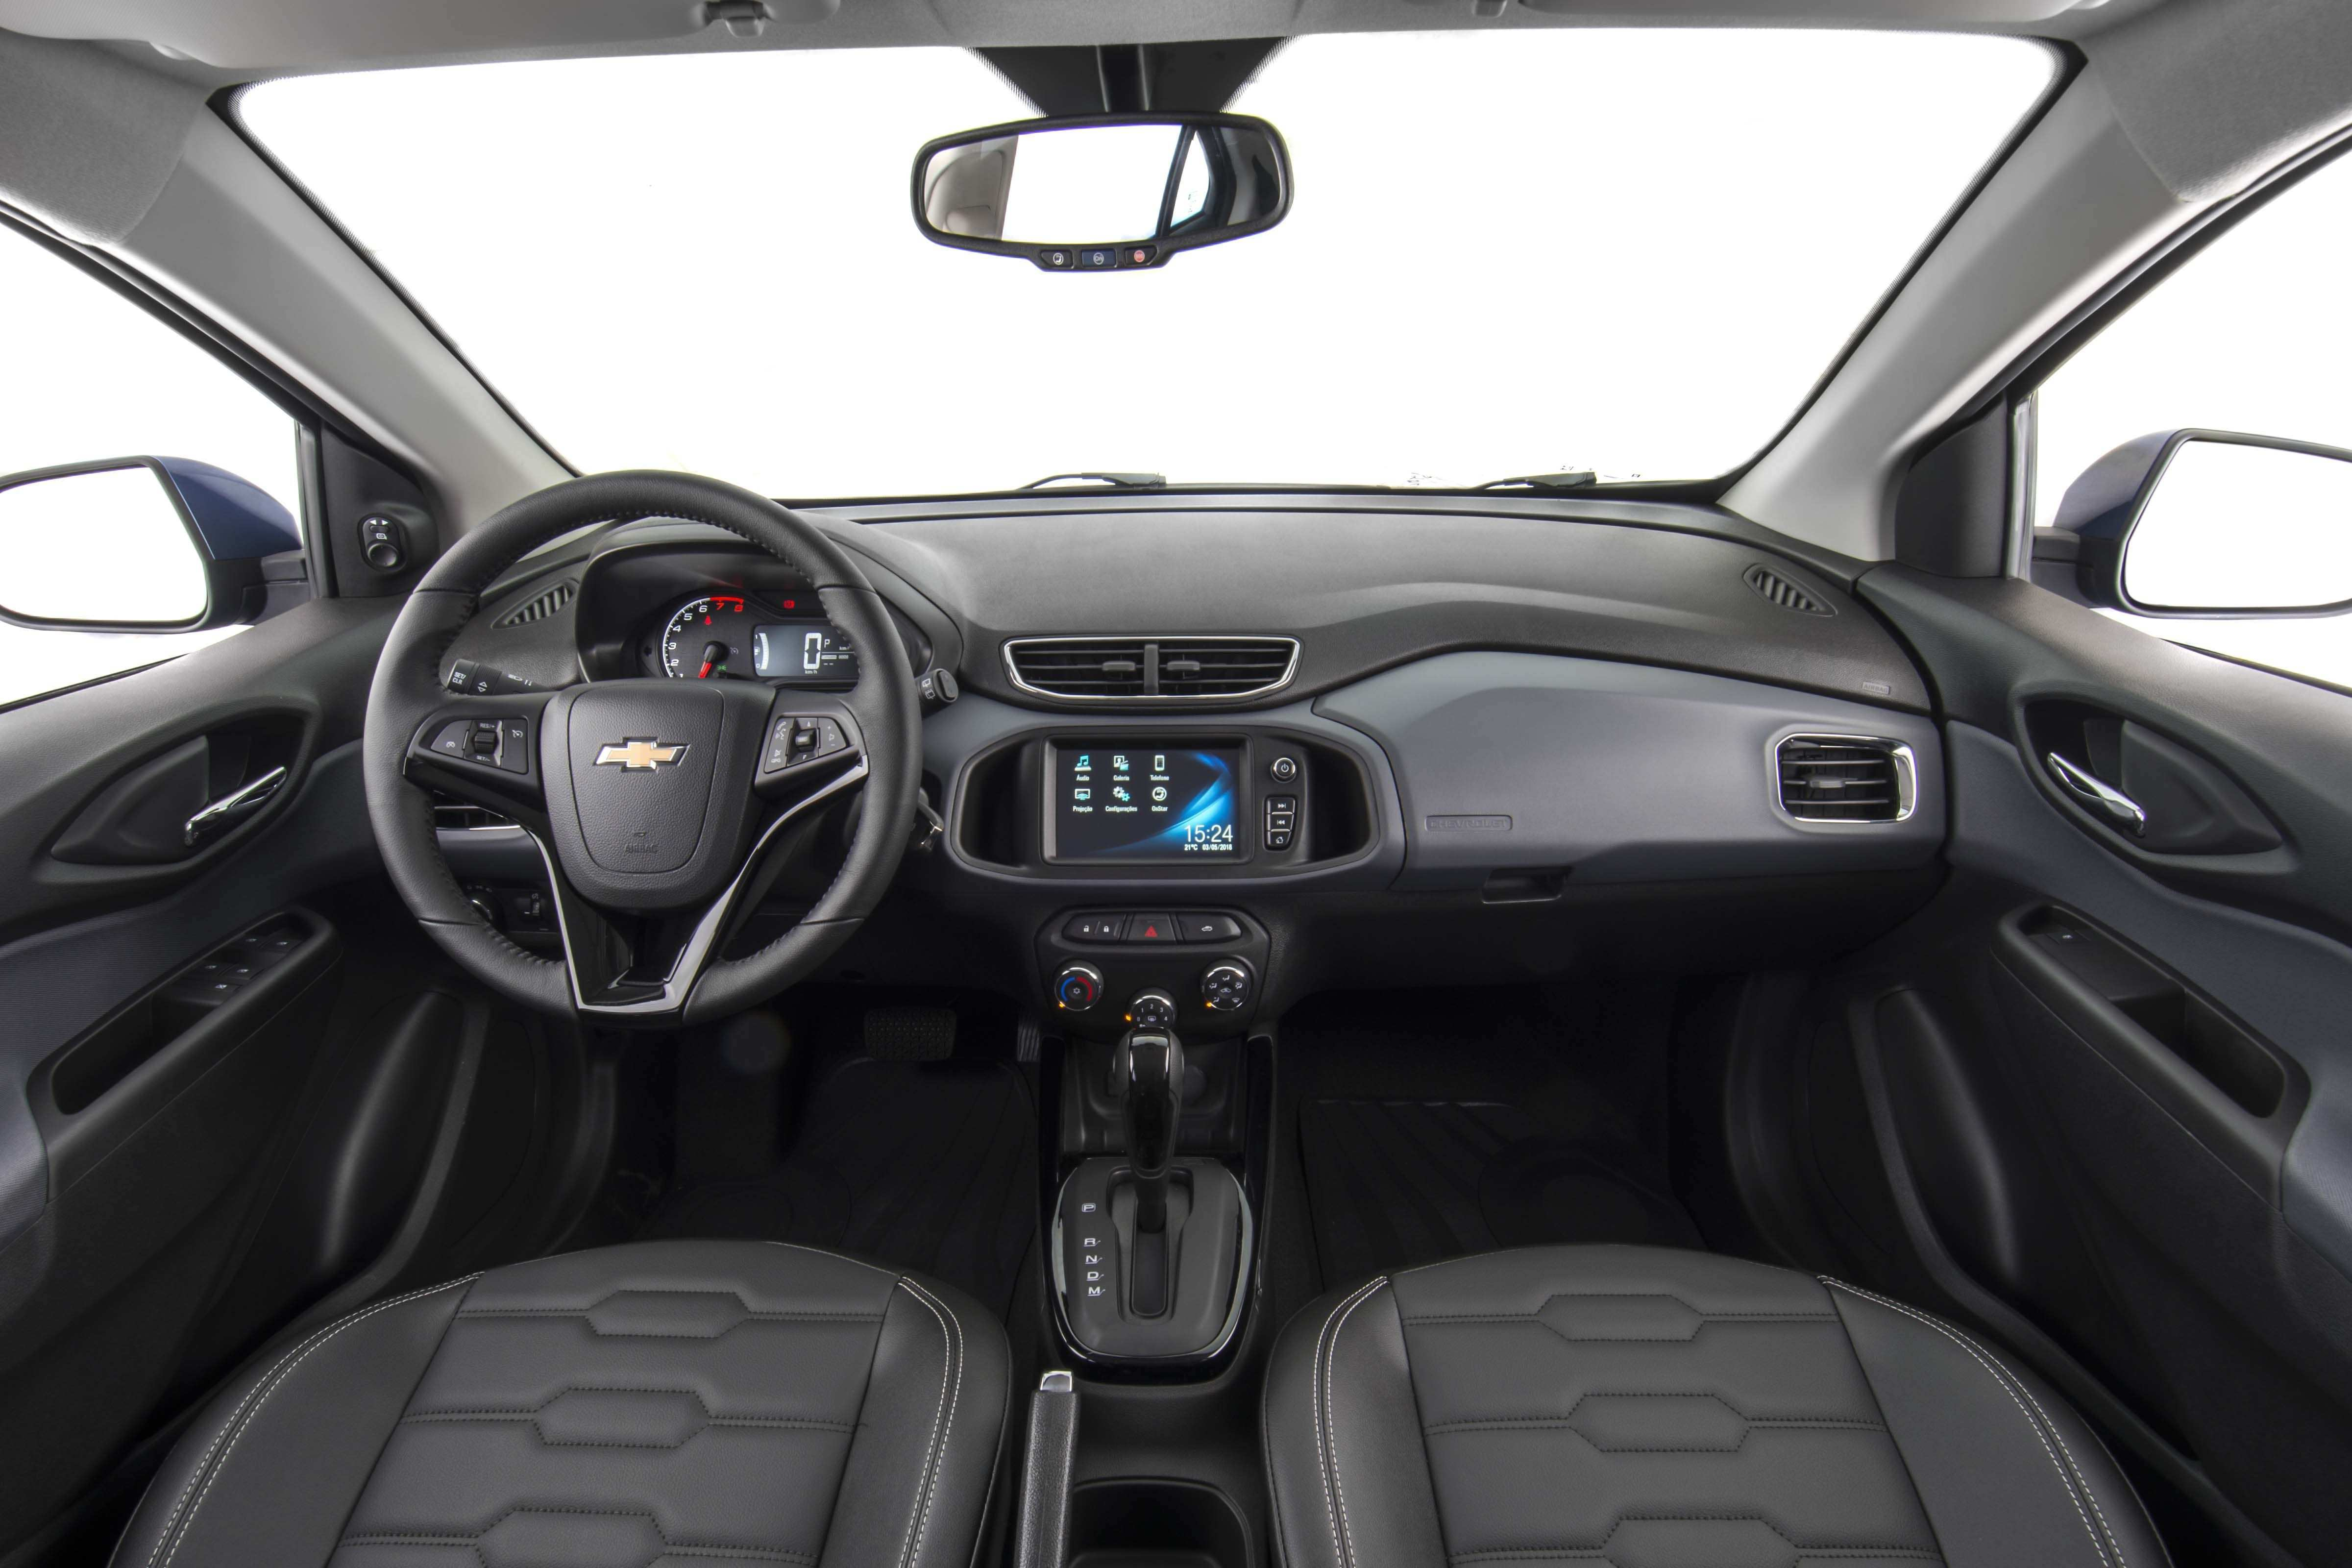 46 Best Review Chevrolet Onix 2019 Interior Pictures for Chevrolet Onix 2019 Interior